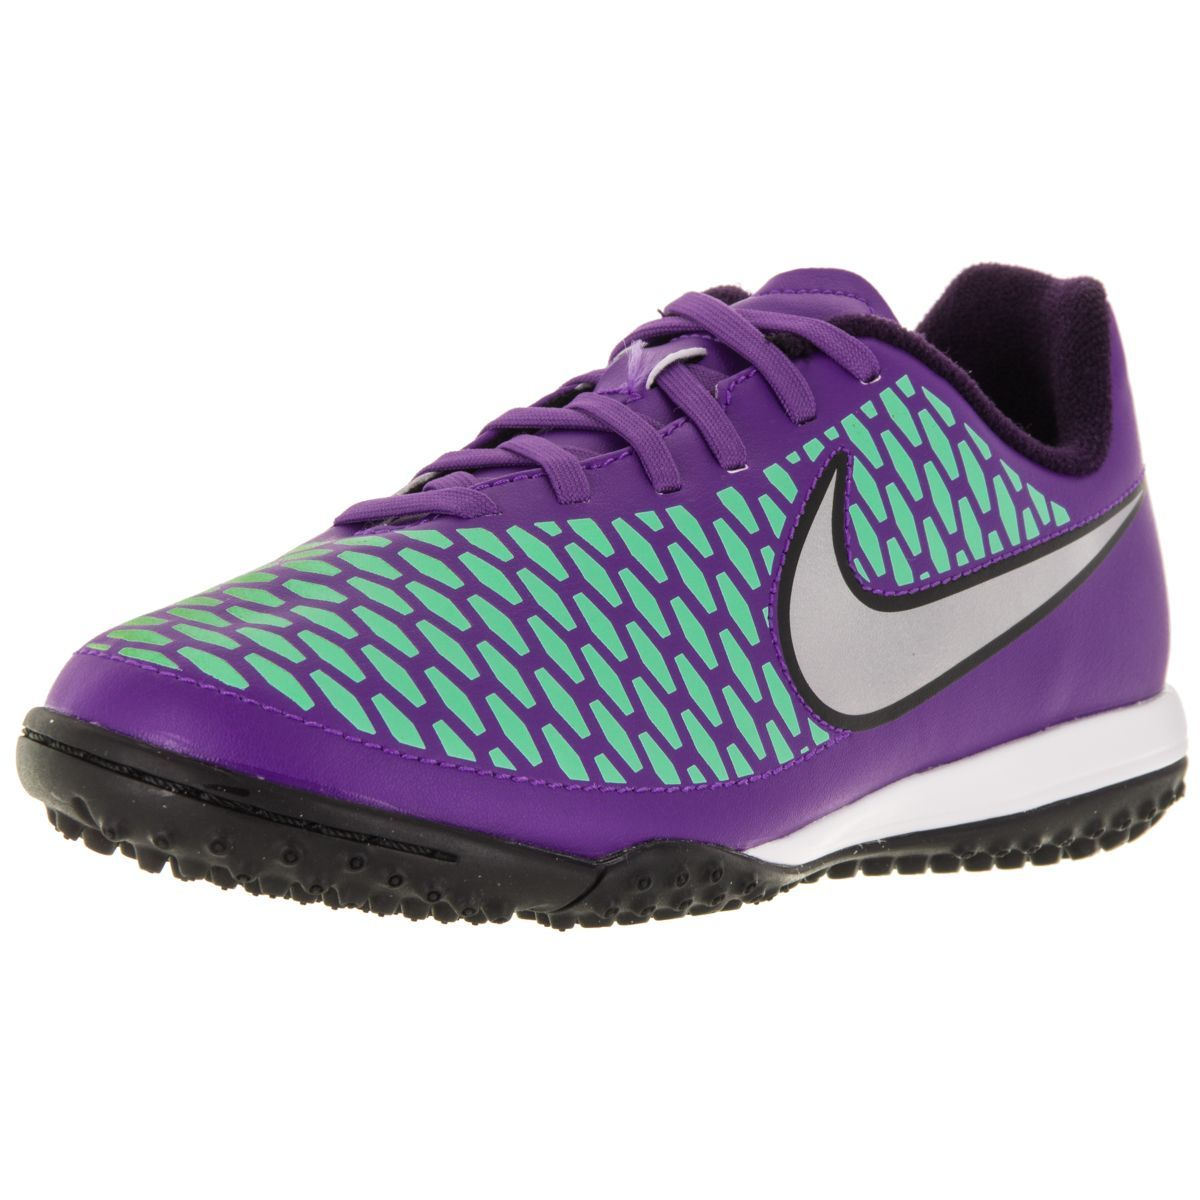 Nike Kid's Jr Magista Onda Tf /Metallic Silver/Purple Turf Soccer ...